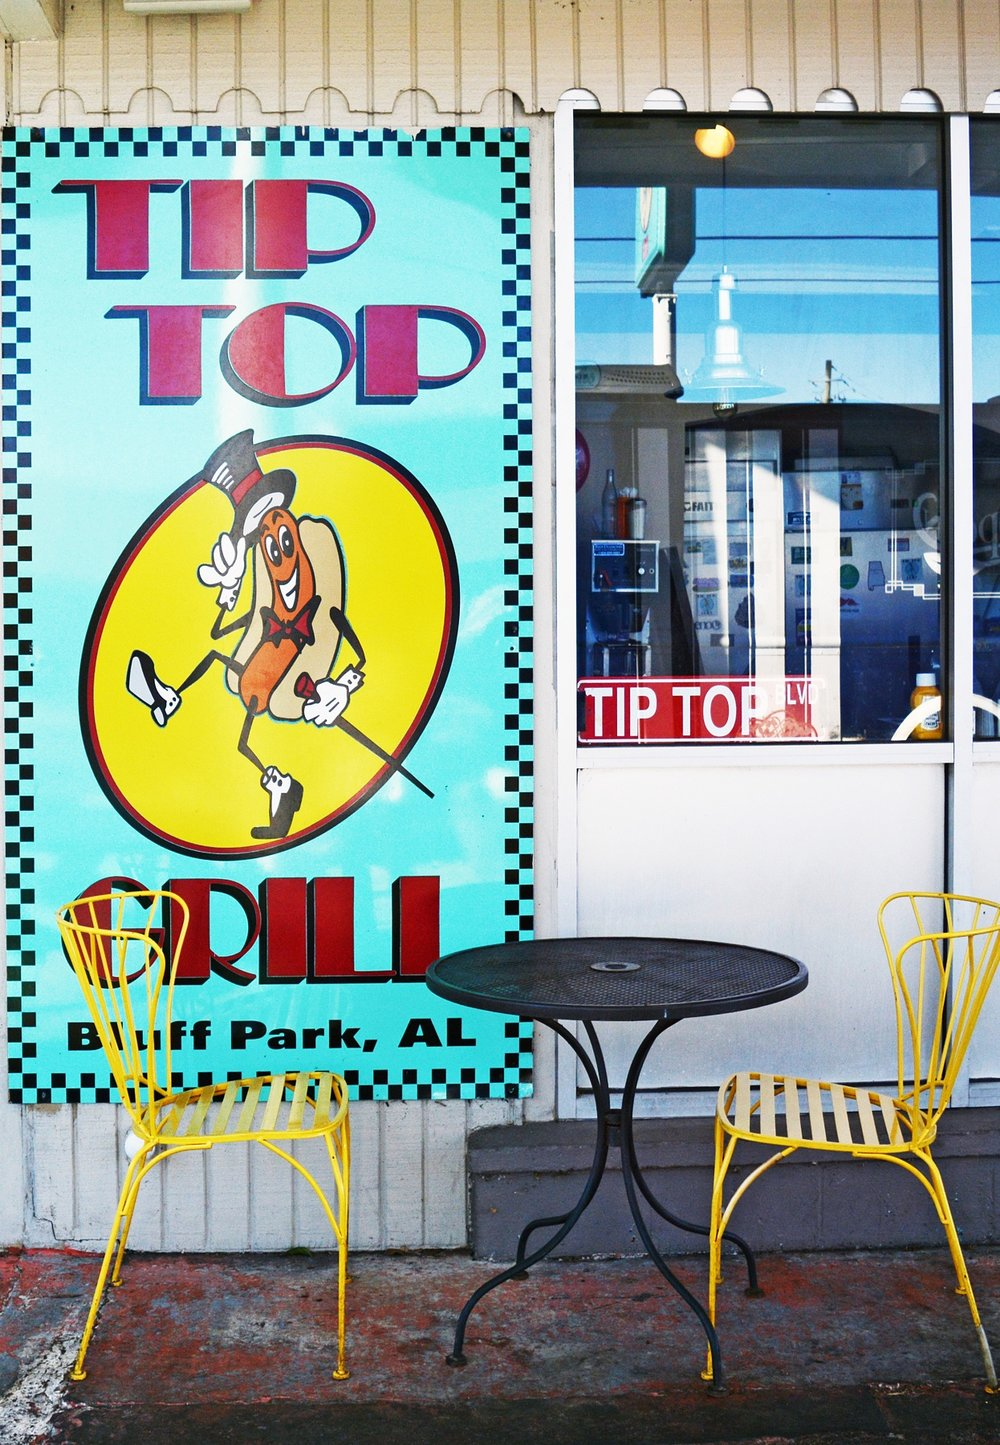 Before it was a burger joint,  Tip Top Grill  was a service station. Offering one of the best views of the bluff, the grill stays packed most weekends.